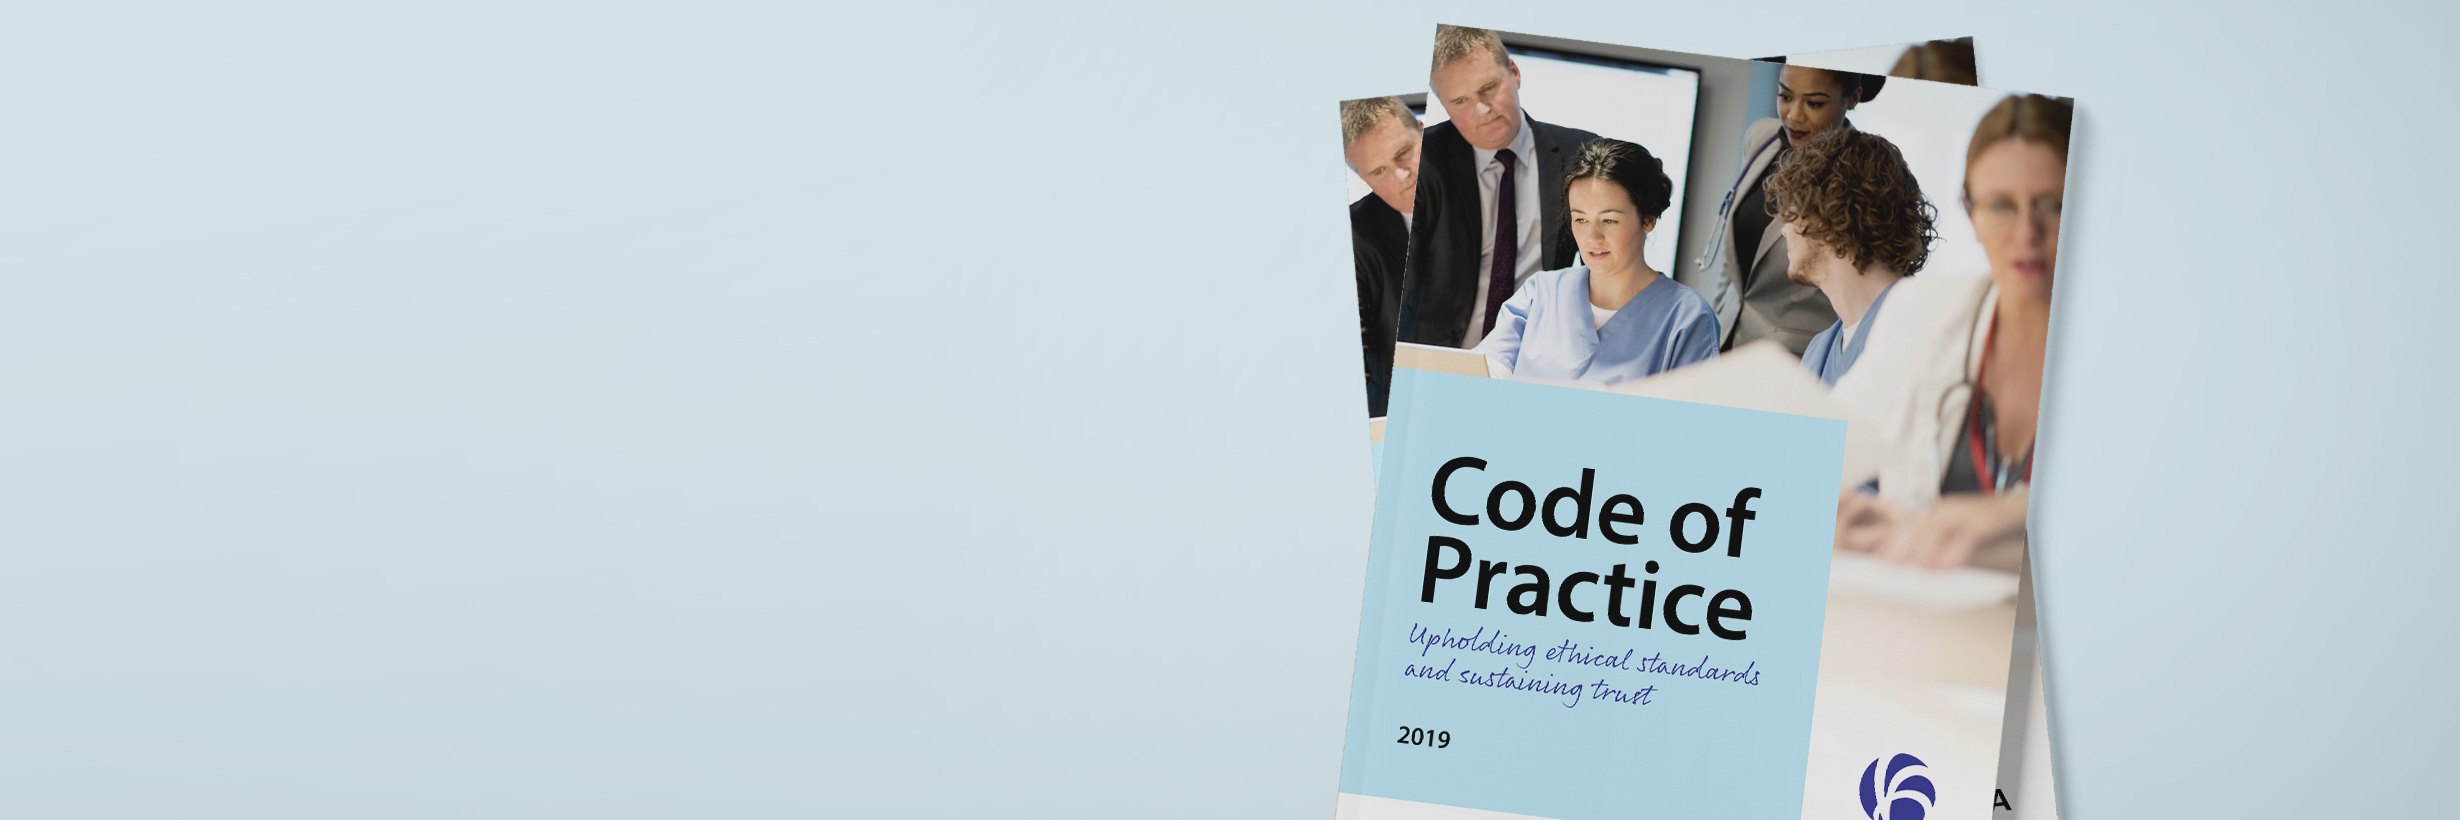 New IFPMA Code of Practice 2019